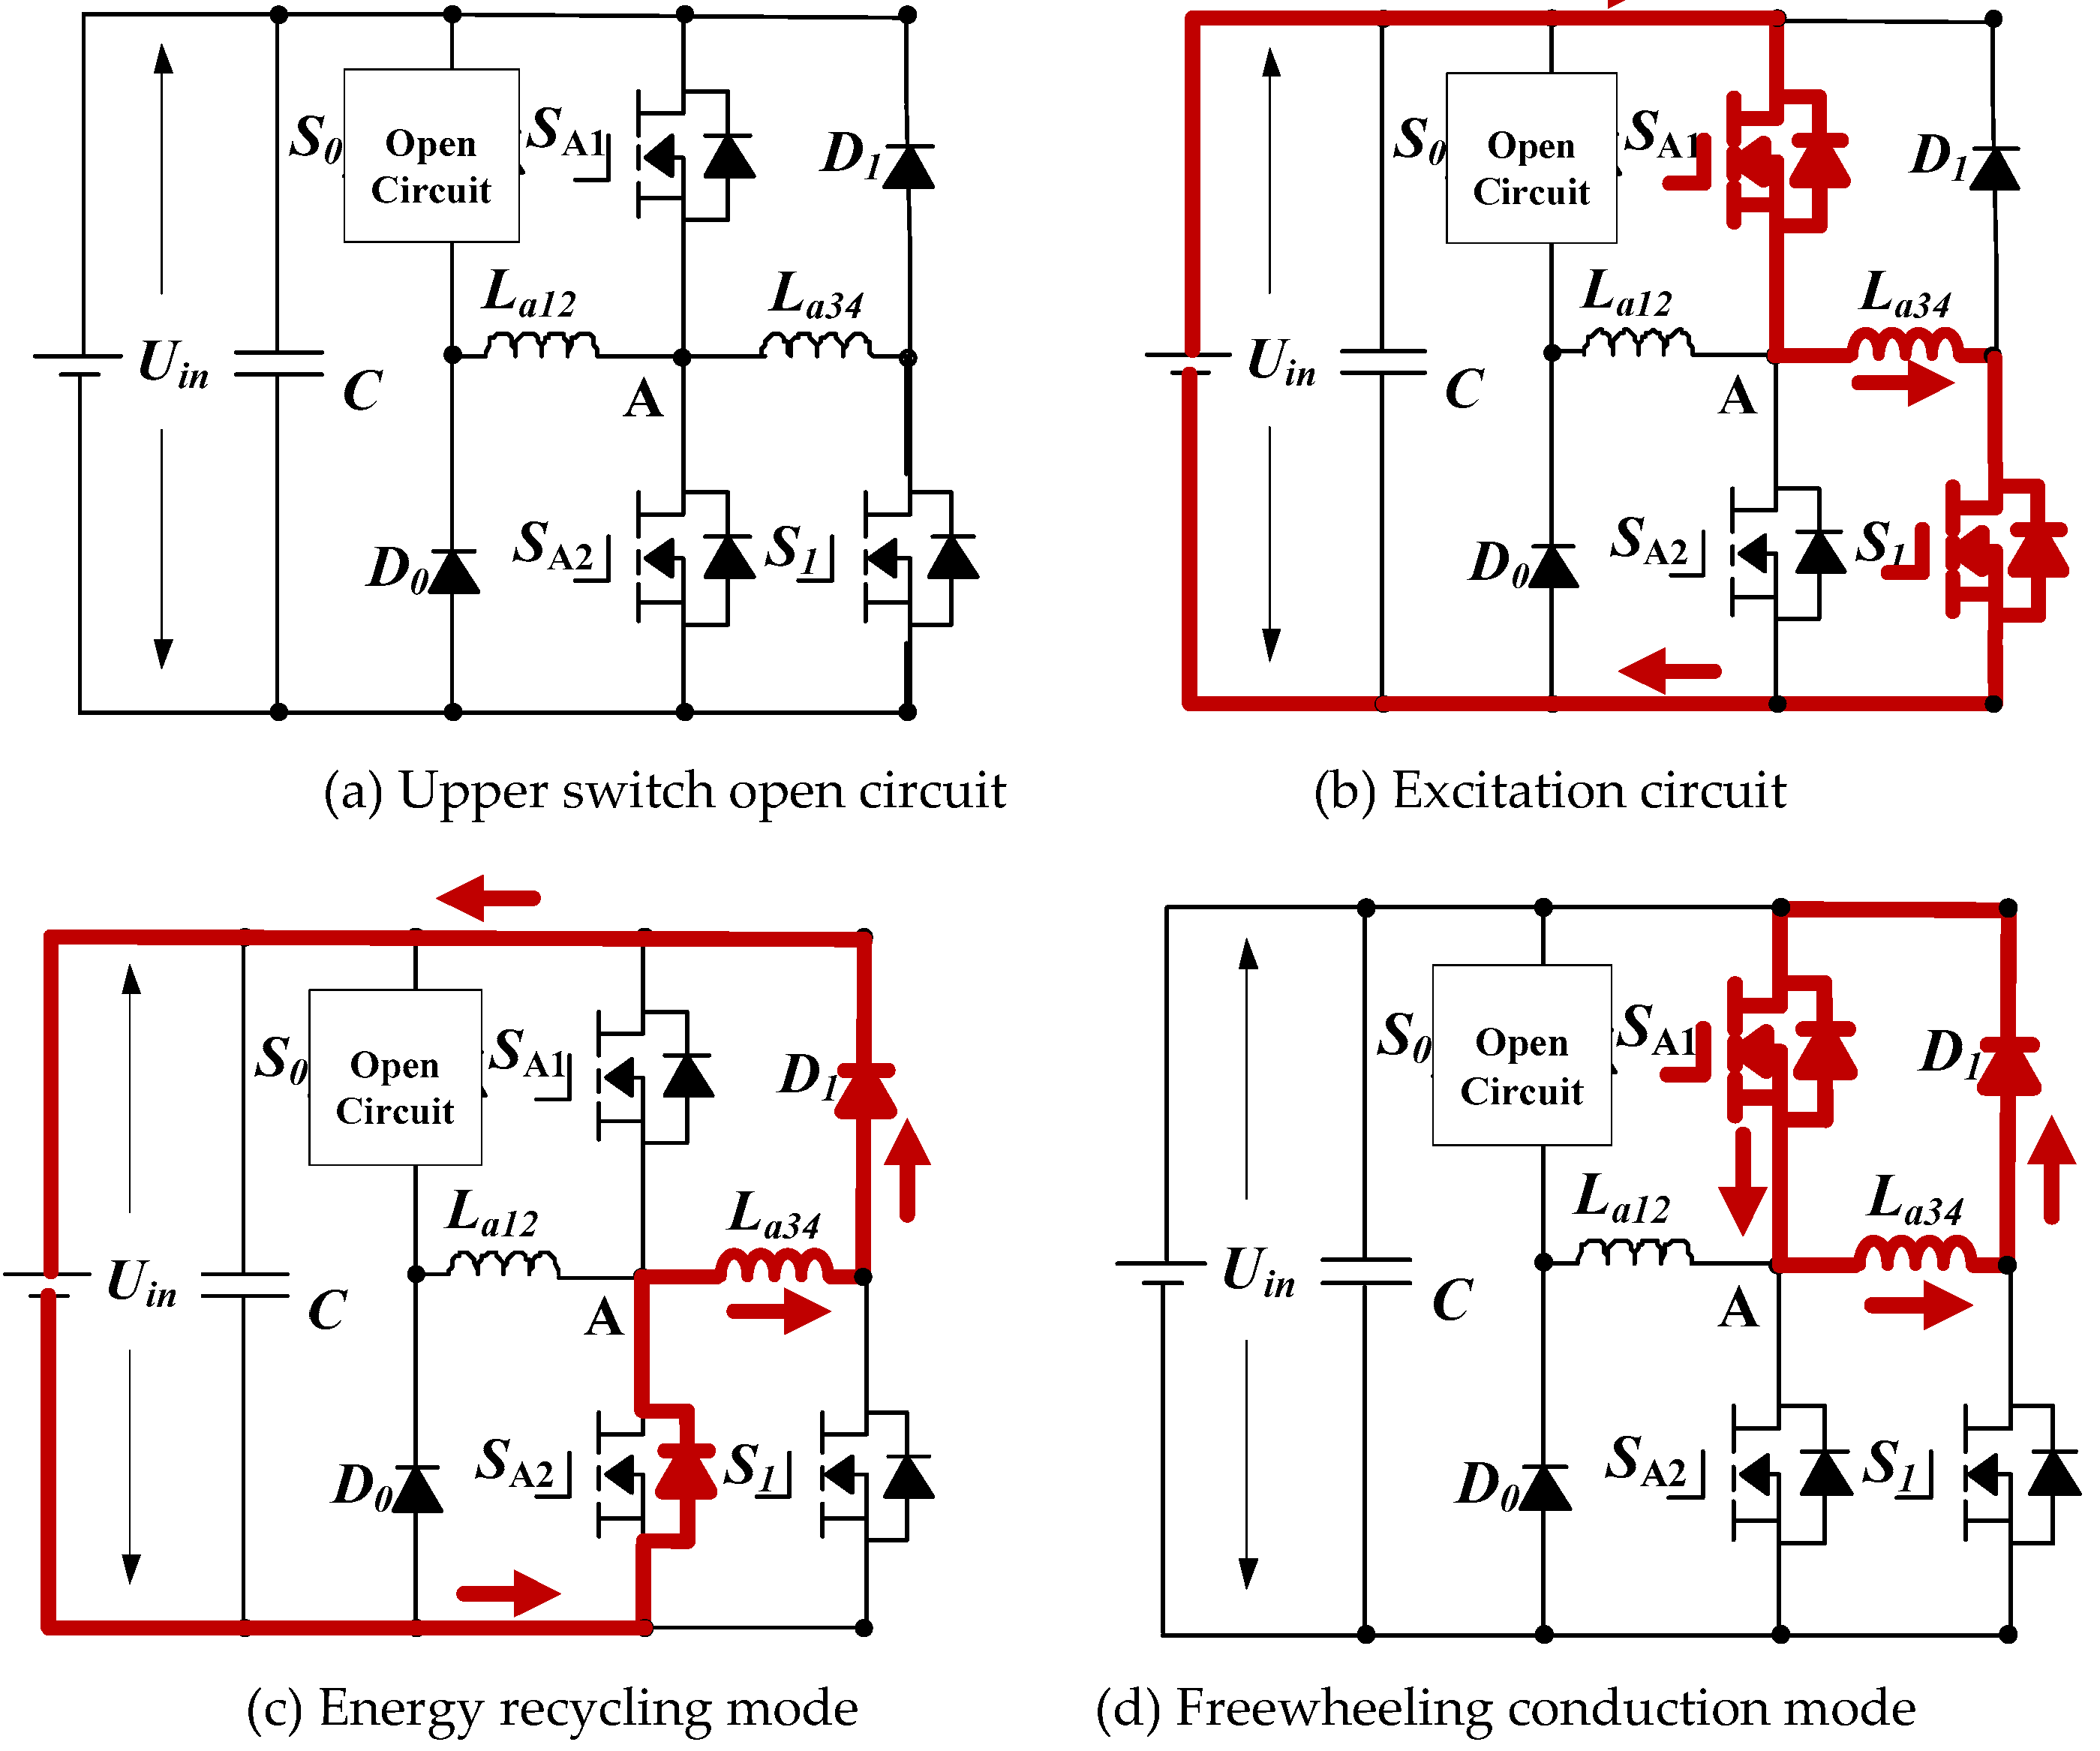 Open Circuit Faults Fault Diagnosis Of Switched Reluctance Motors In Electrified Vehicle Figure 17 Tolerance Operation Topology Under